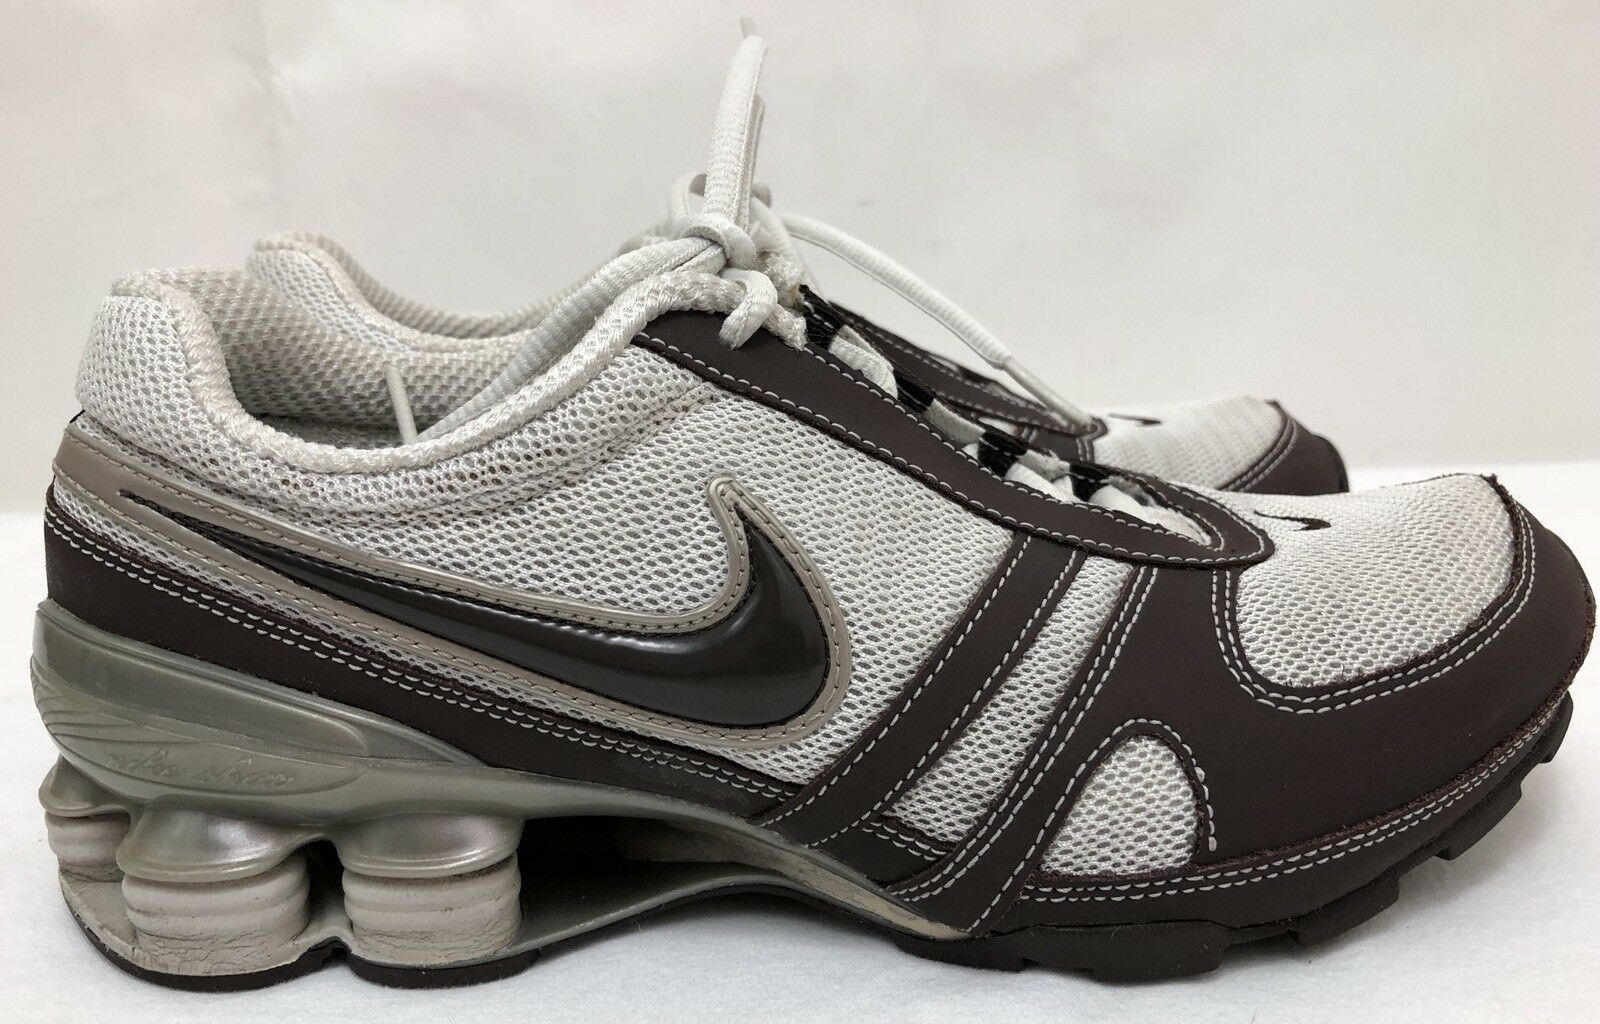 2007 Womens NIKE SHOX SIZE 316888-021 Brown/White Running Shoes SIZE SHOX 6.5 ~RARE COLOR~ 370bf5